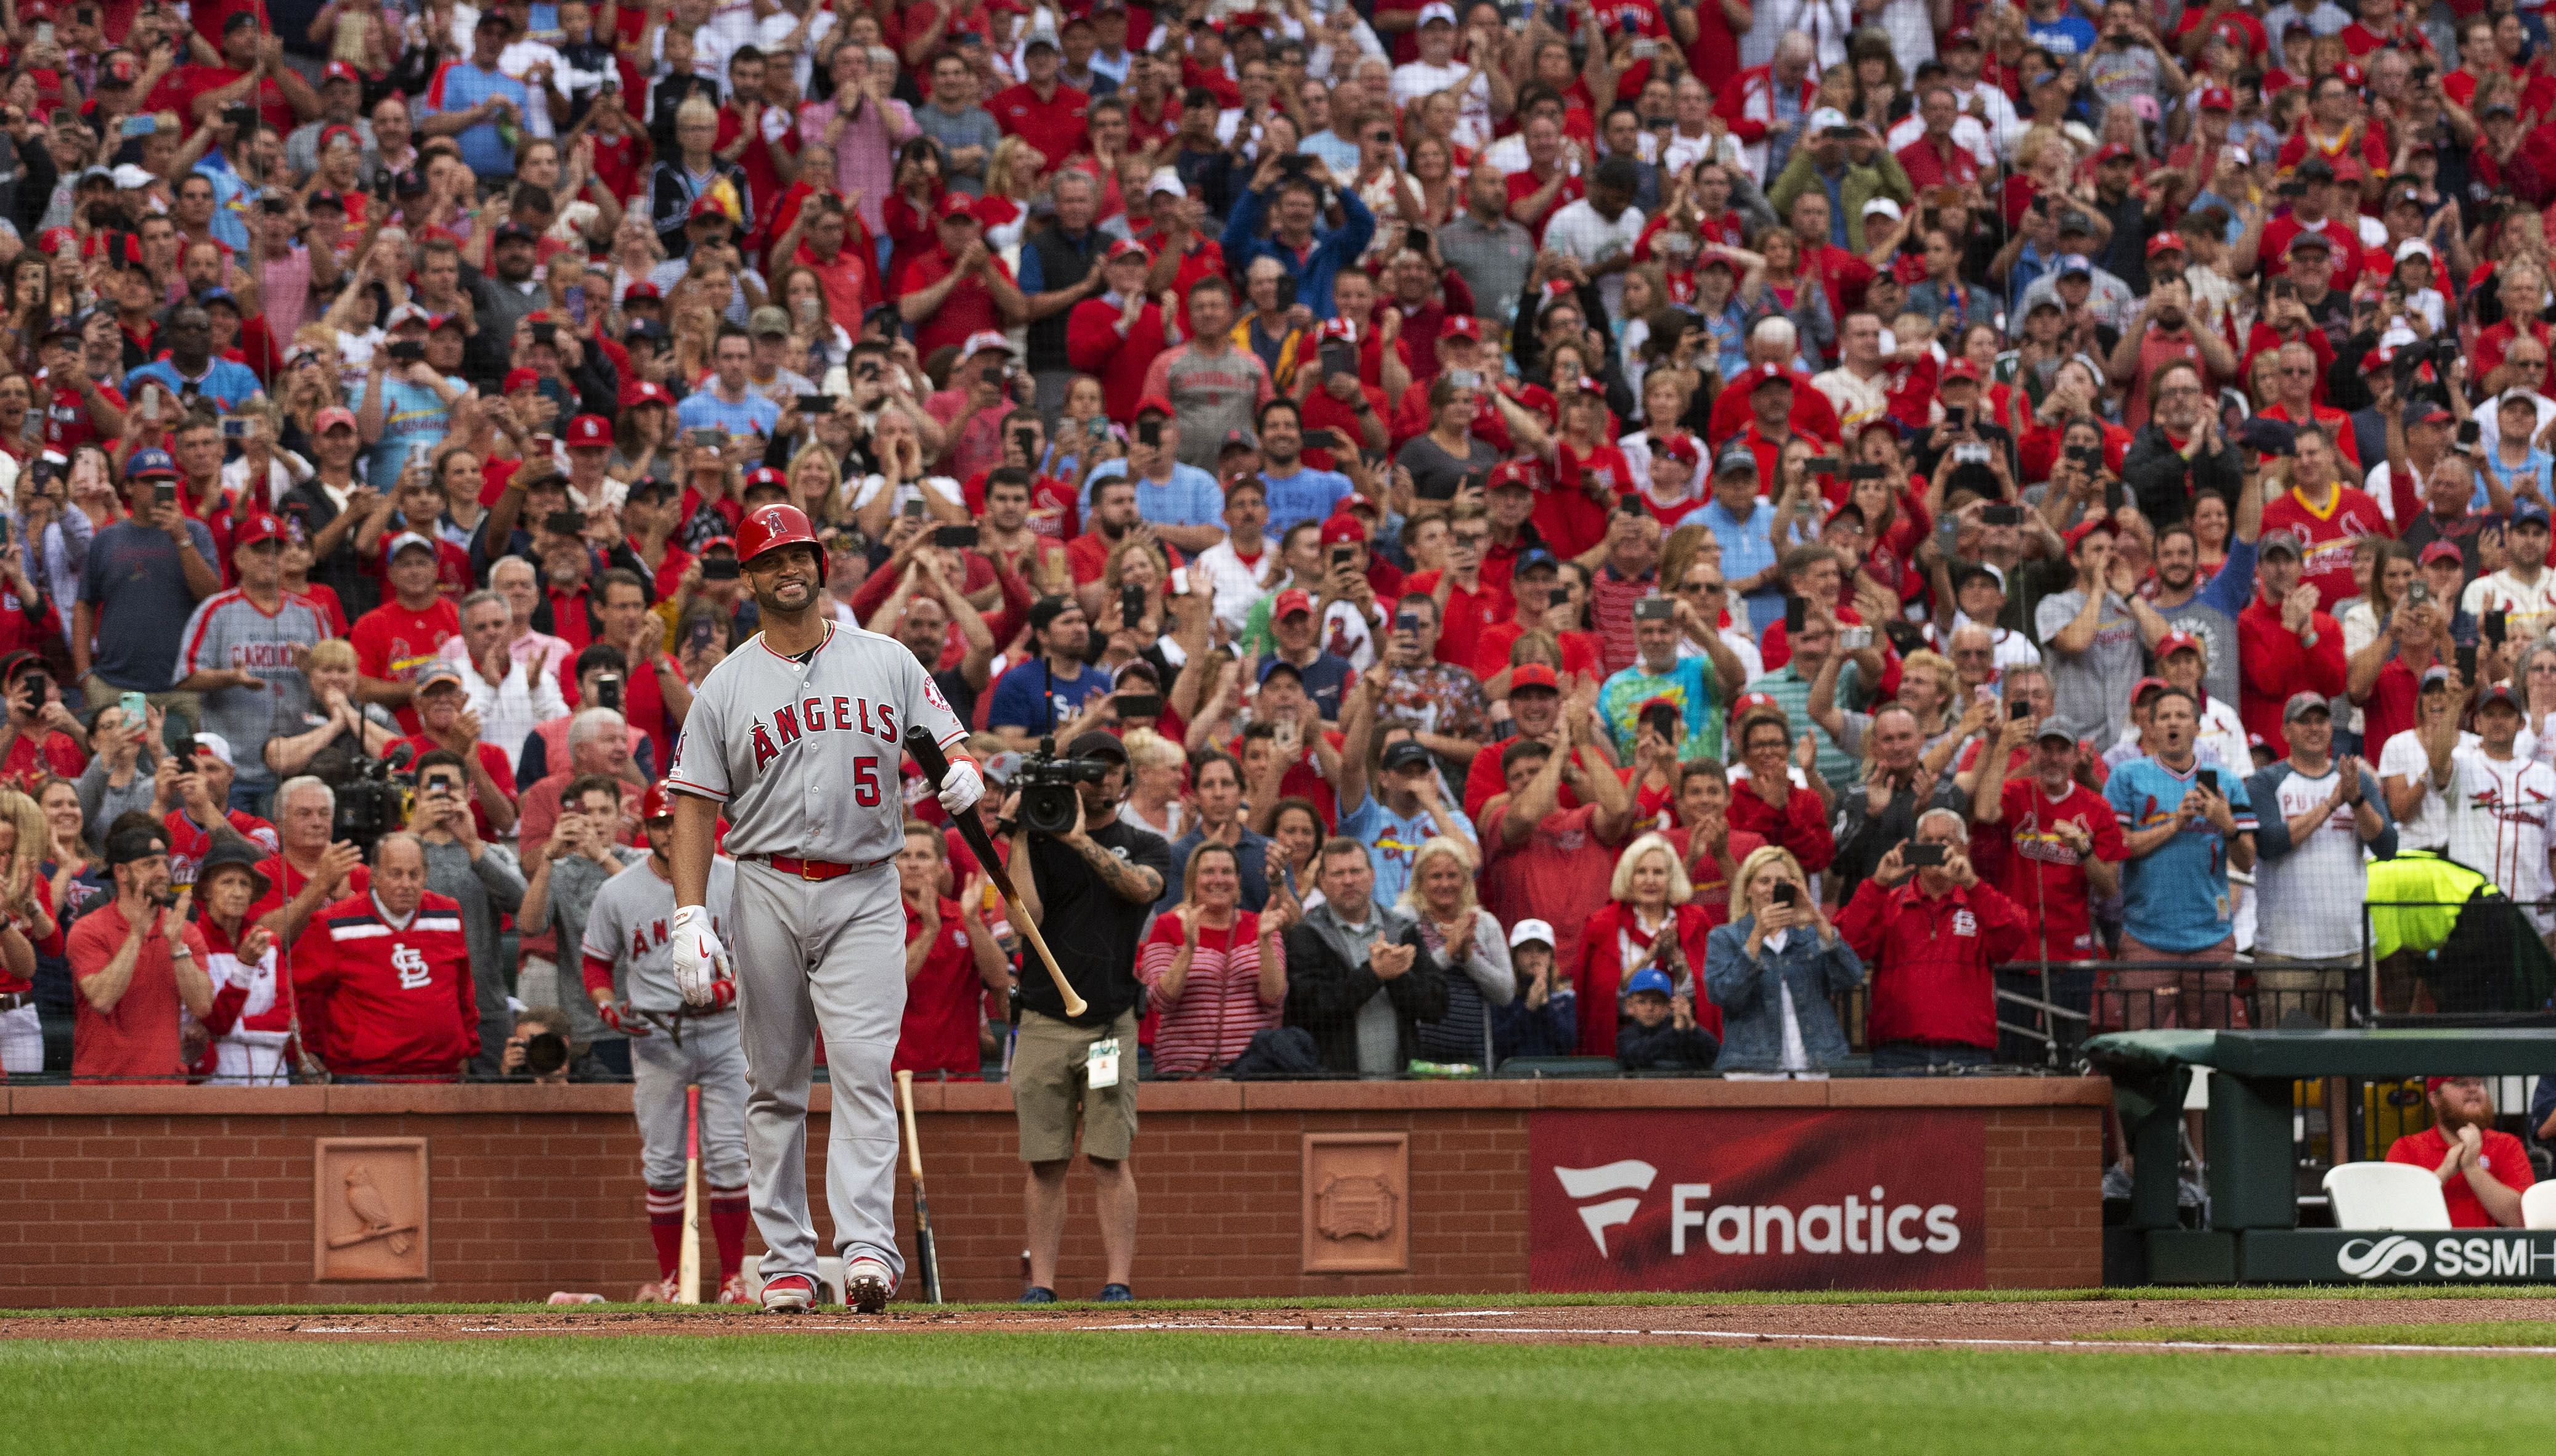 Cards fans salute Angels star Pujols in return to St. Louis